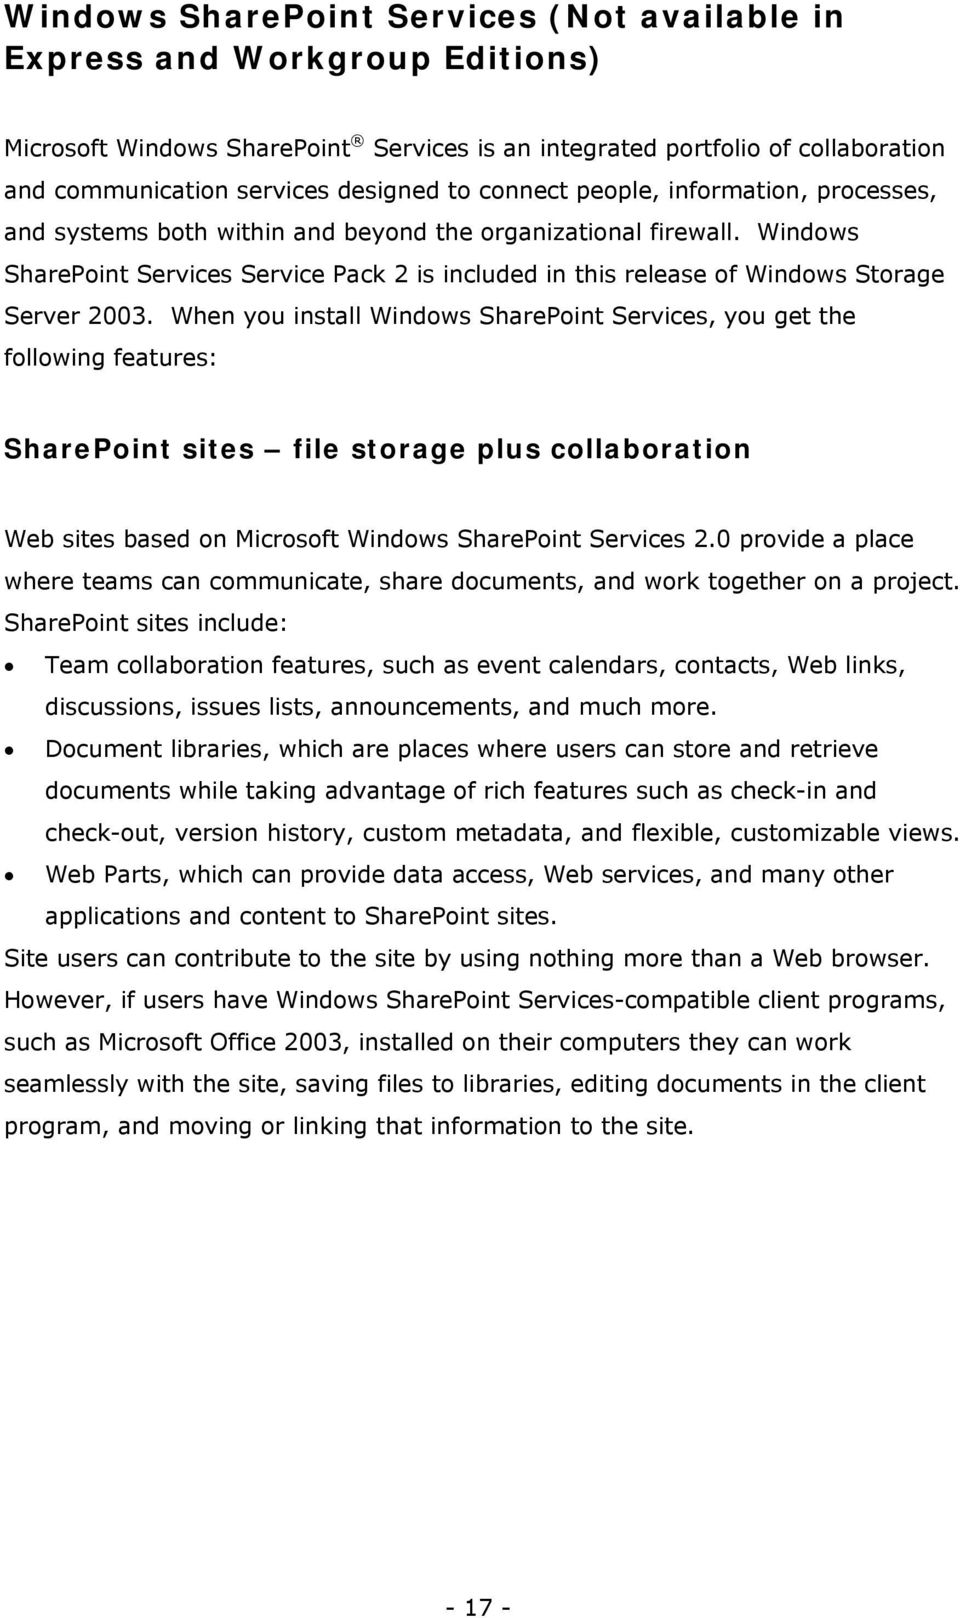 Windows SharePoint Services Service Pack 2 is included in this release of Windows Storage Server 2003.